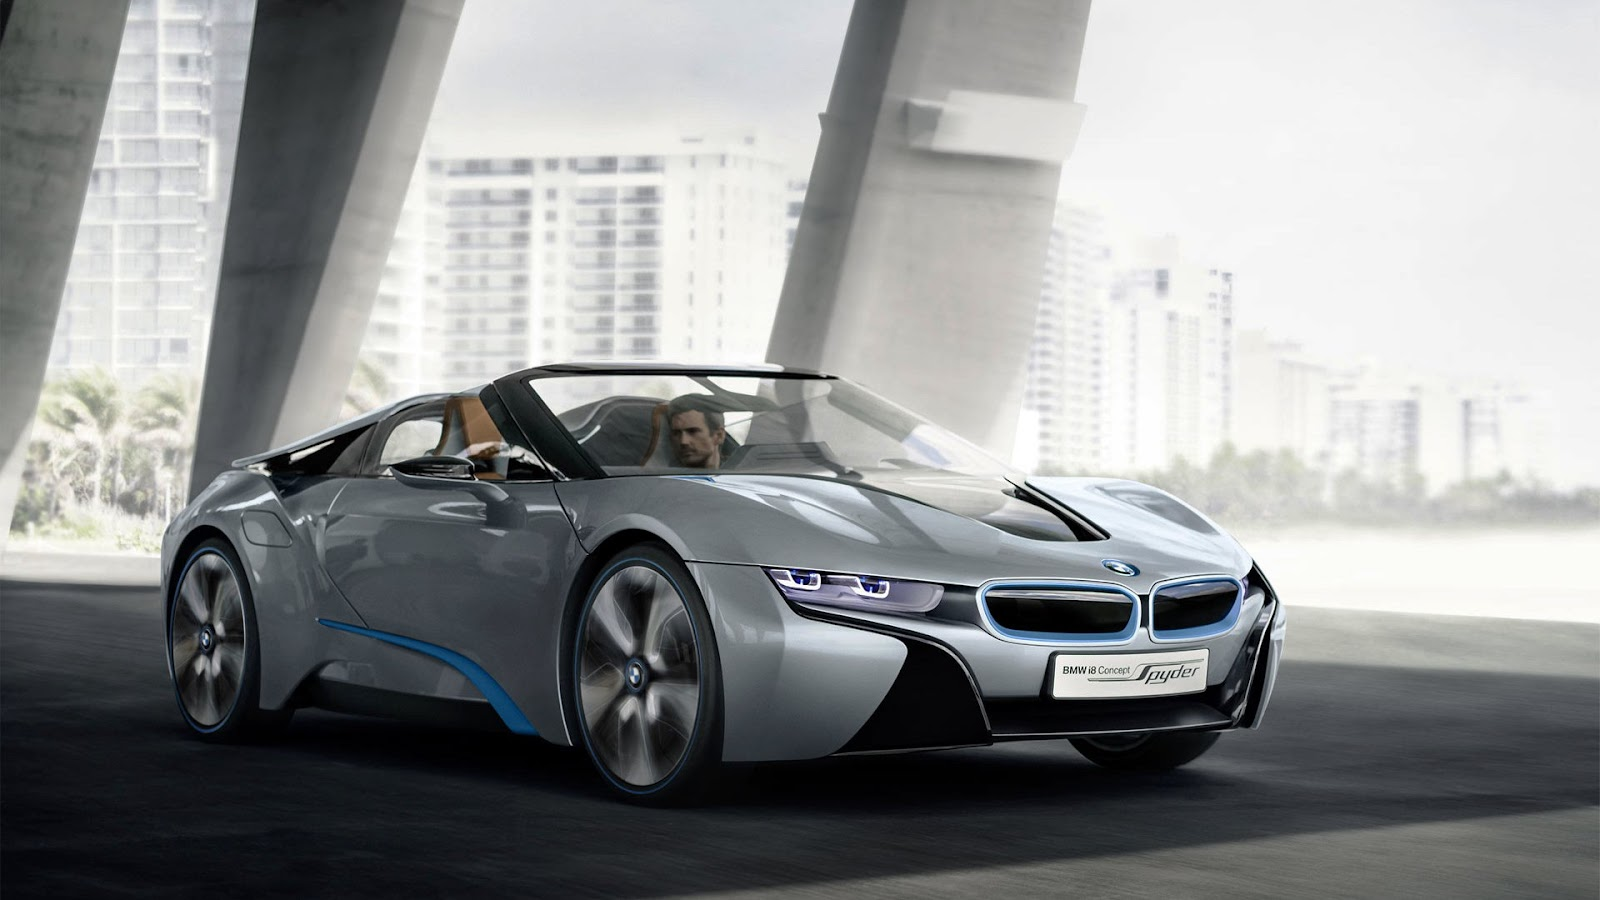 2013 bmw i8 spyder concept free full hd car wallpaper. Black Bedroom Furniture Sets. Home Design Ideas